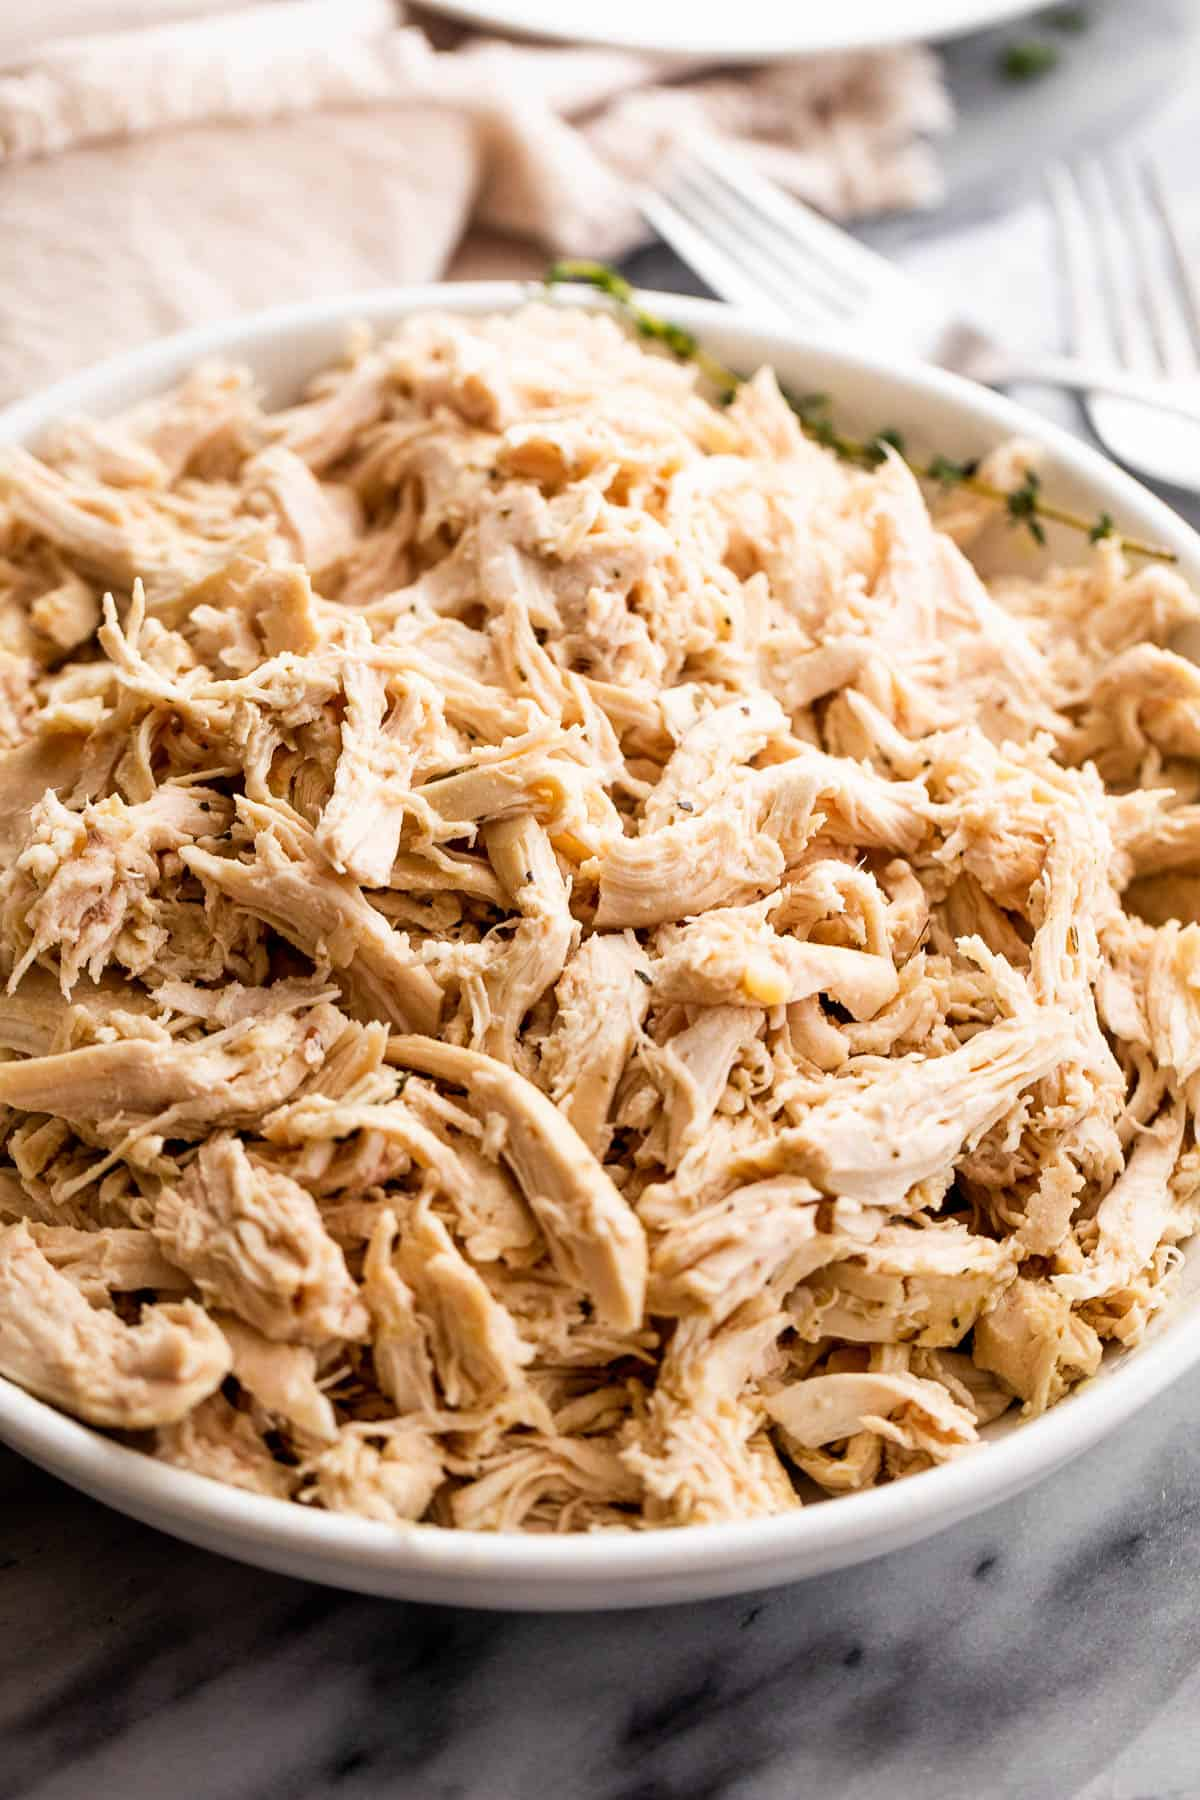 shredded boiled chicken breasts in a white serving bowl